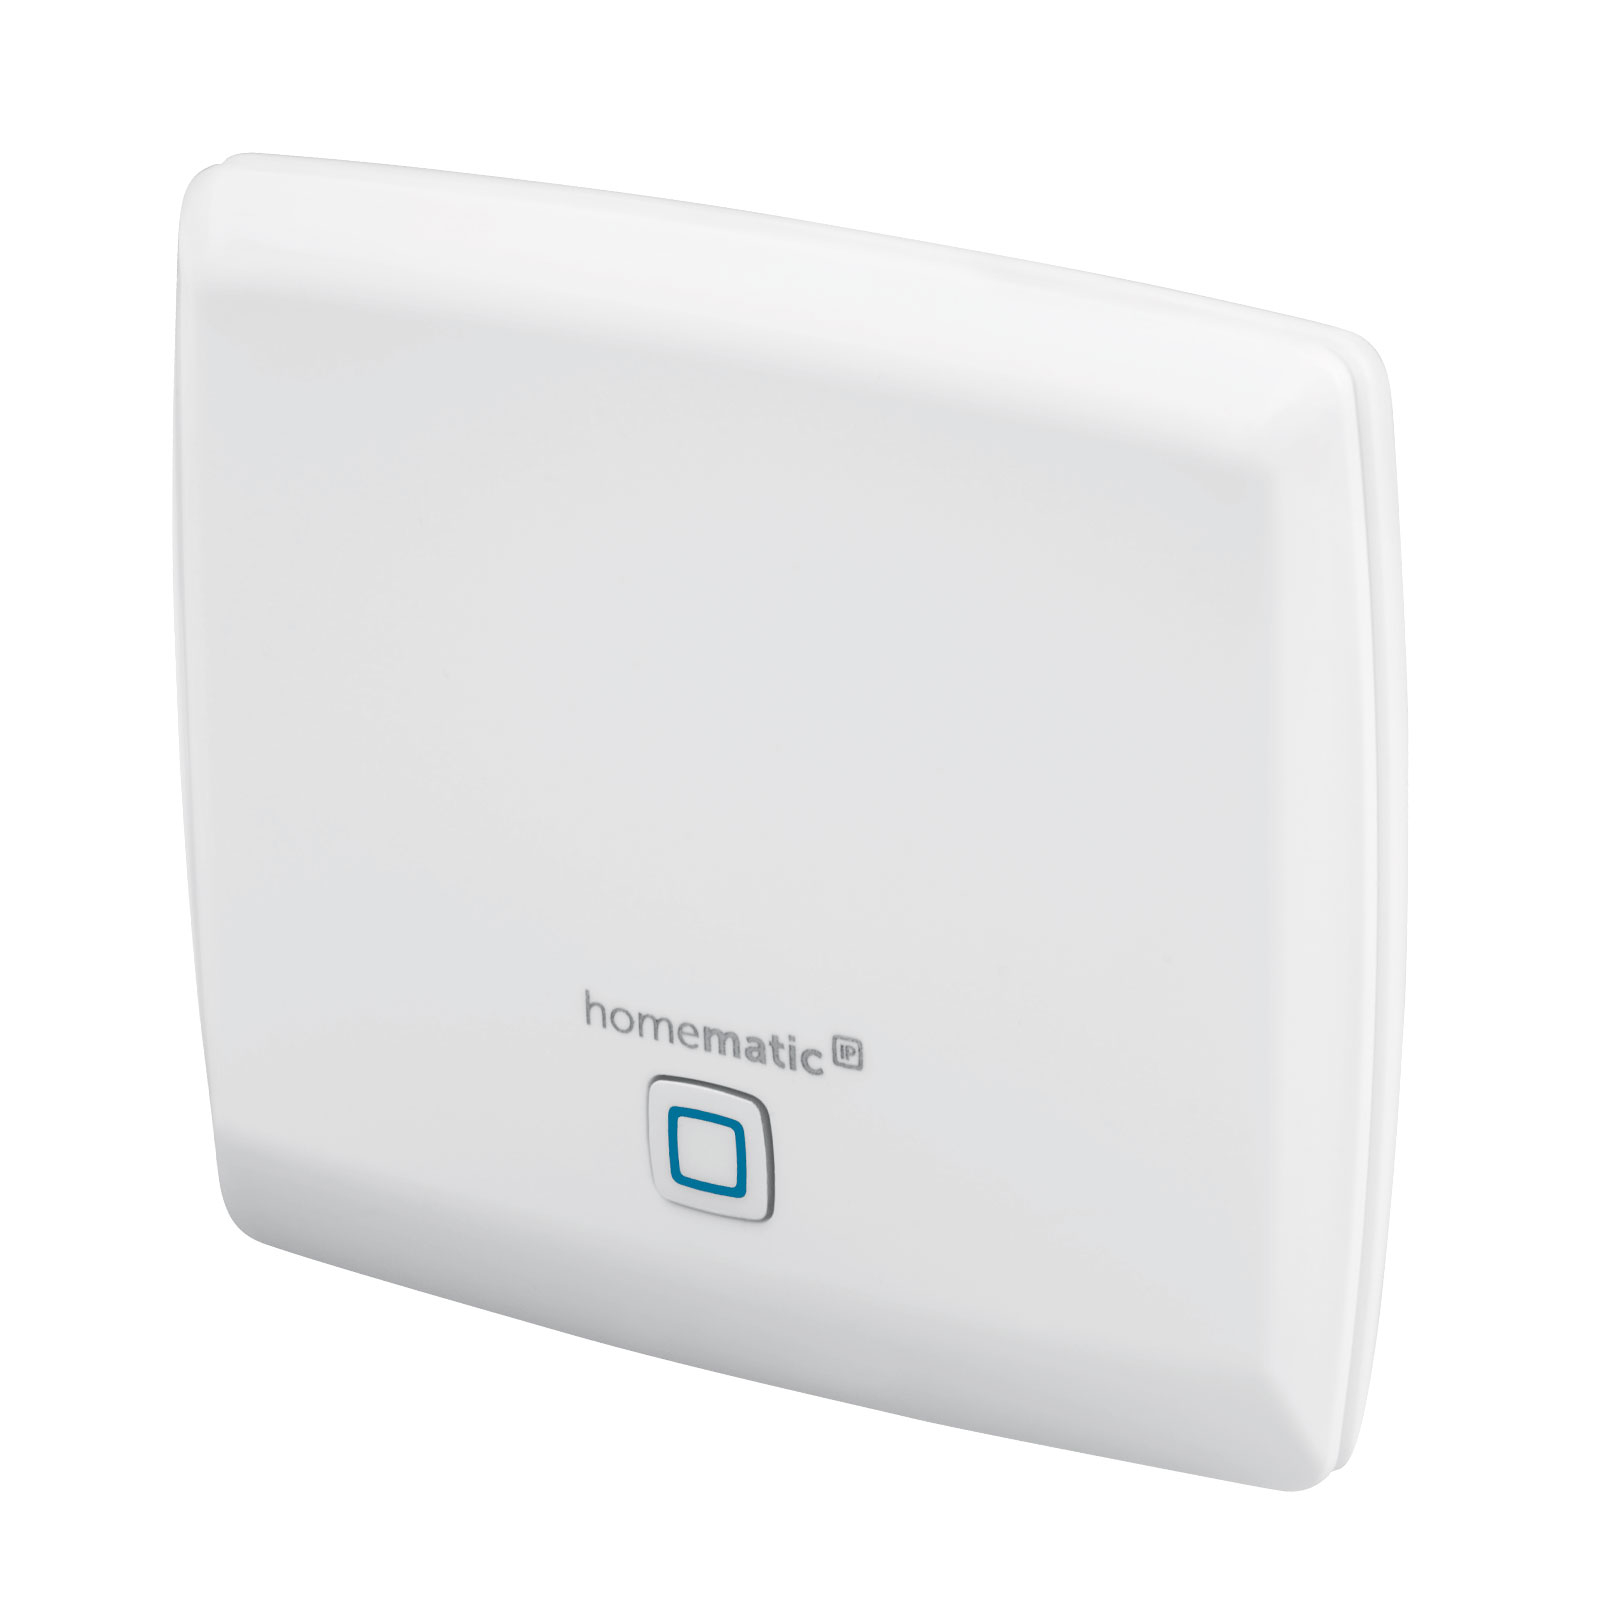 Homematic IP Access Point Steuerzentrale, Cloud kaufen